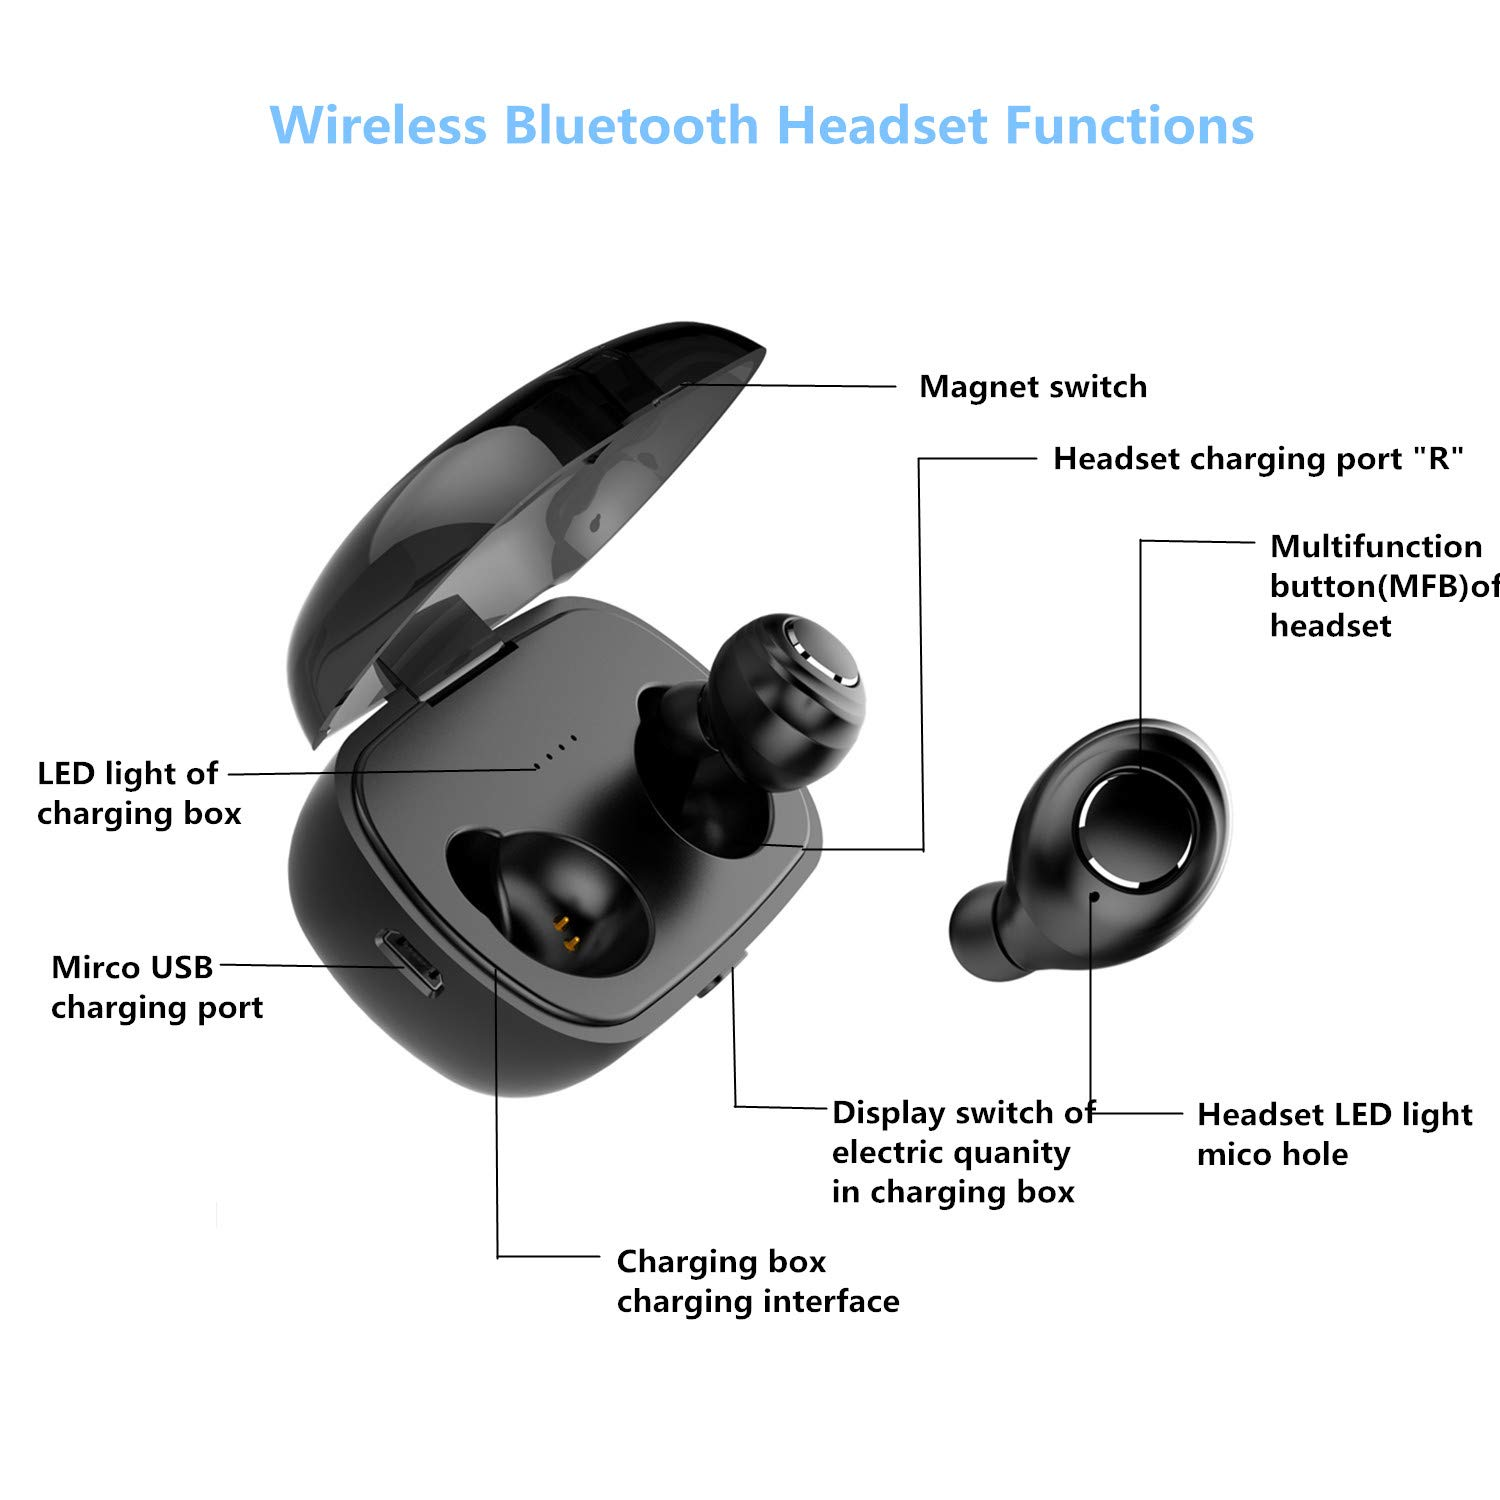 Wireless Bluetooth Earbuds,Sharllen V5.0 True Wireless Stereo Bluetooth Earbuds Waterproof Headphones Noise Cancelling in-Ear Headsets with Charging Case Built-in Compatible iPhone Android